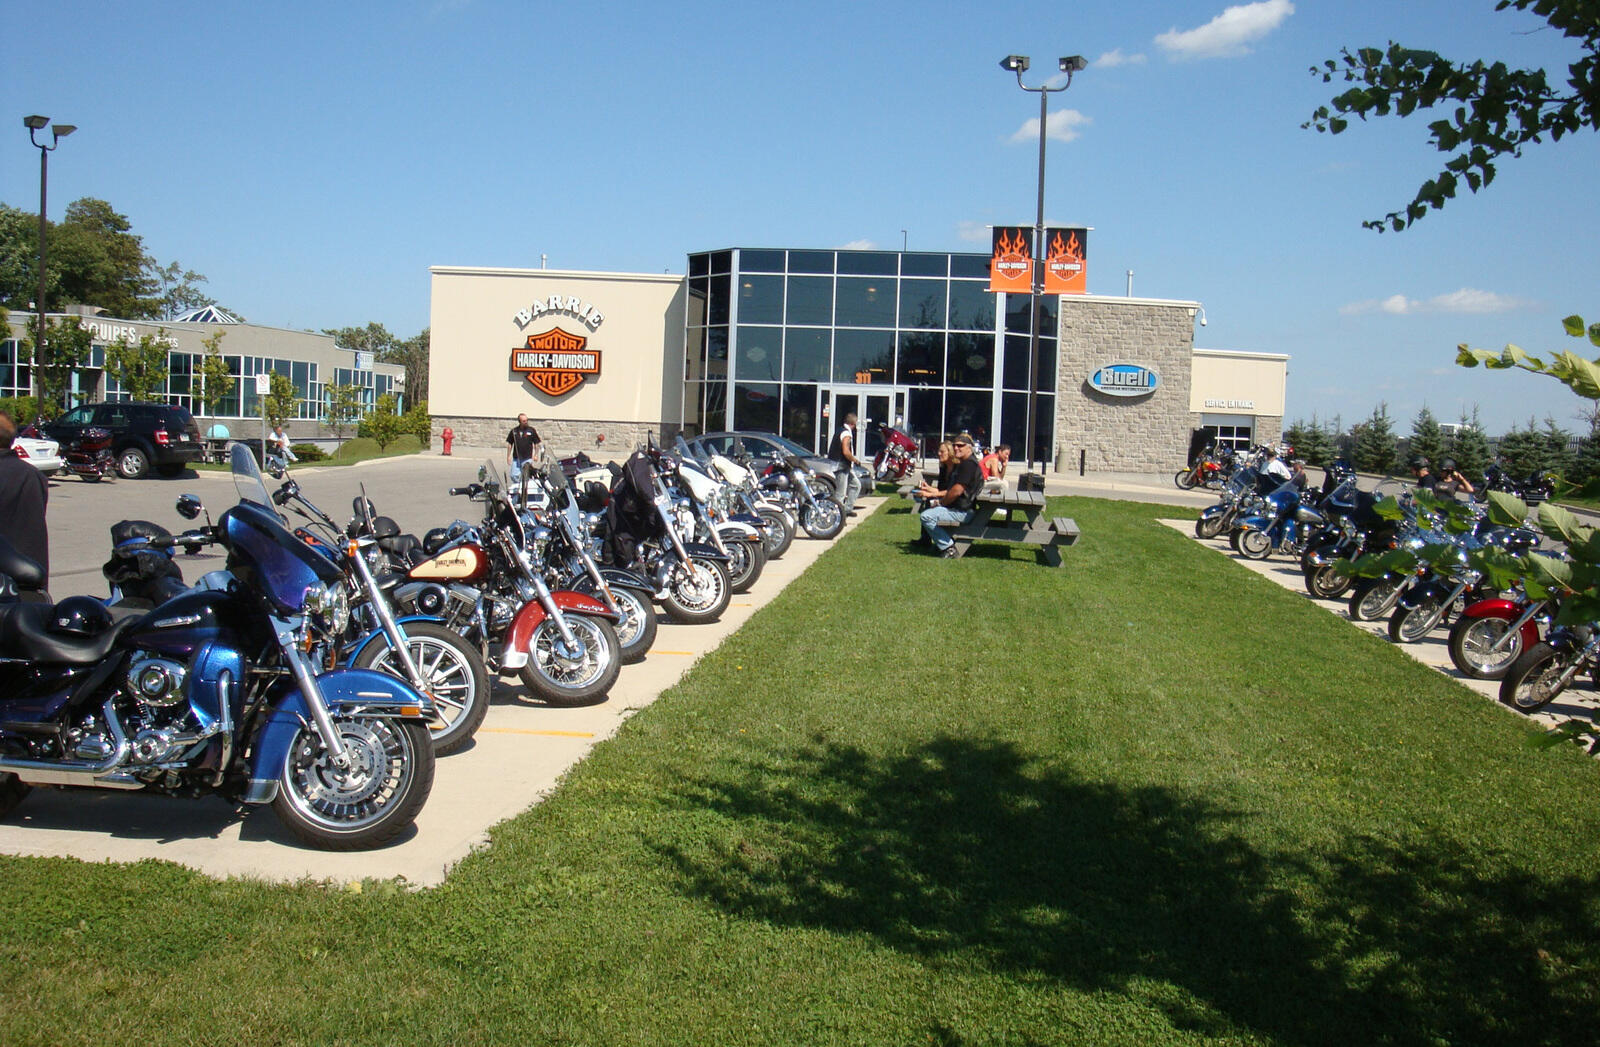 Ontario Motorcycle Dealers And Repair Shops The Complete